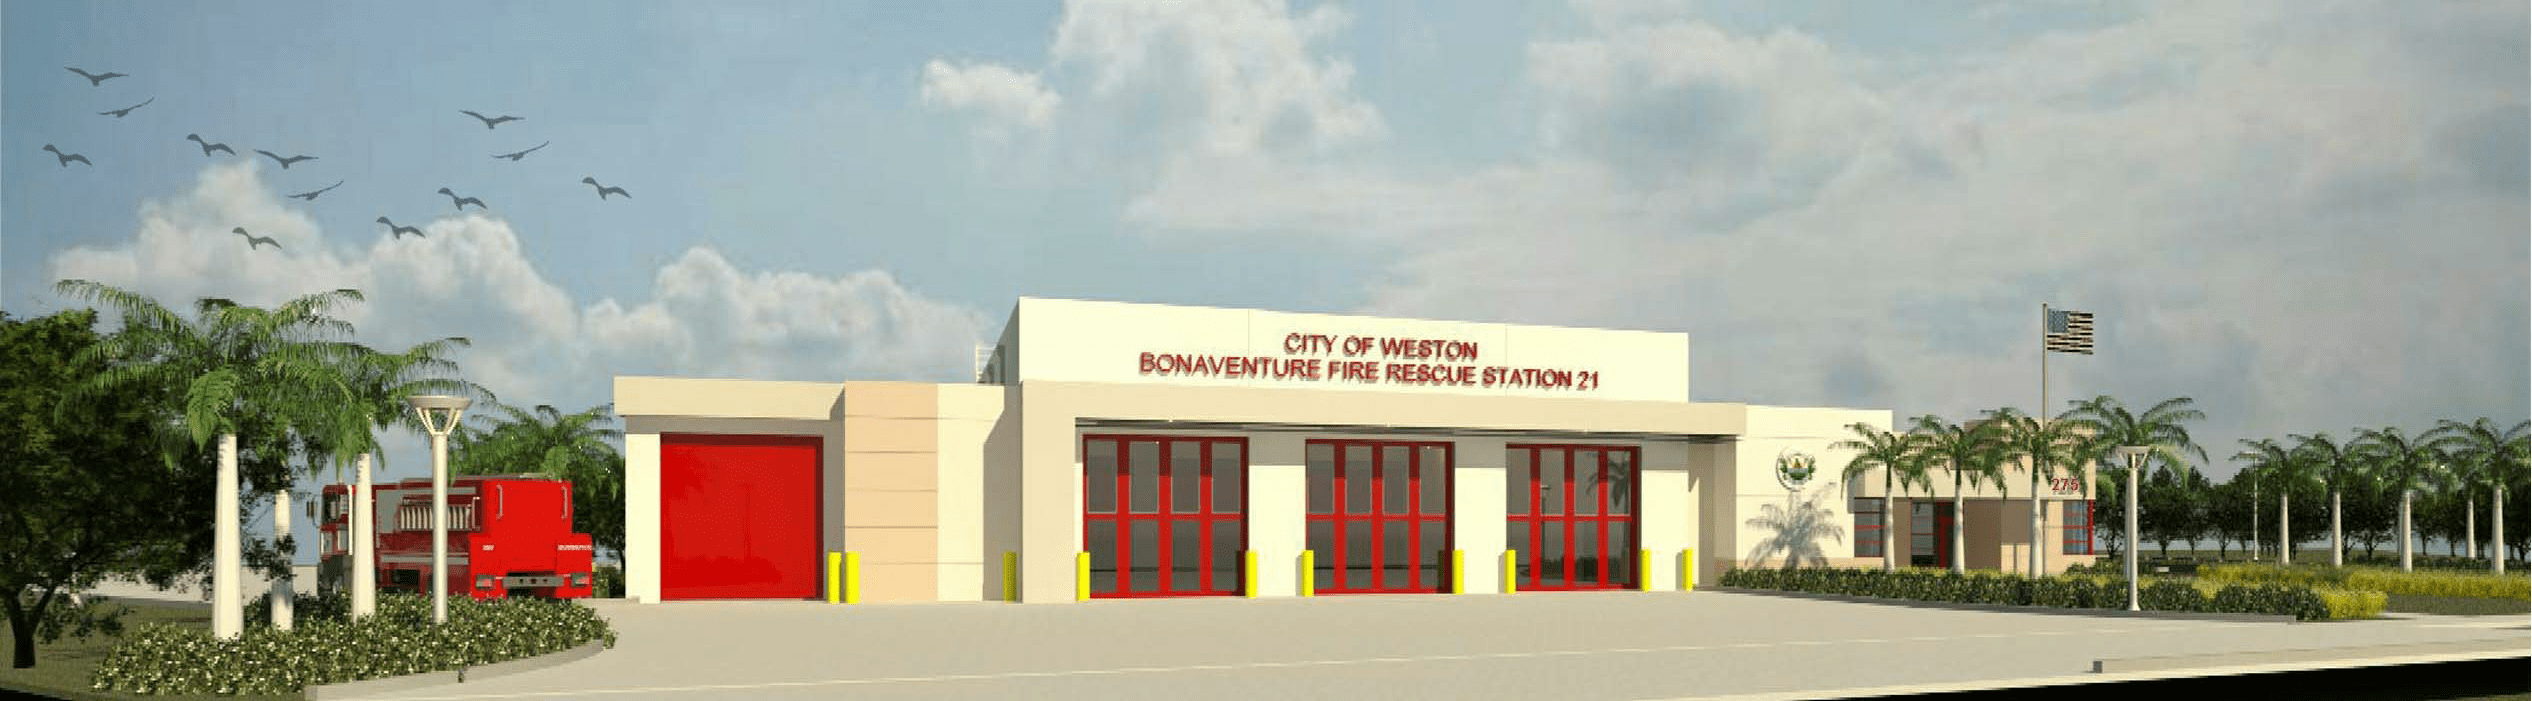 City-of-Weston-Fire-Station